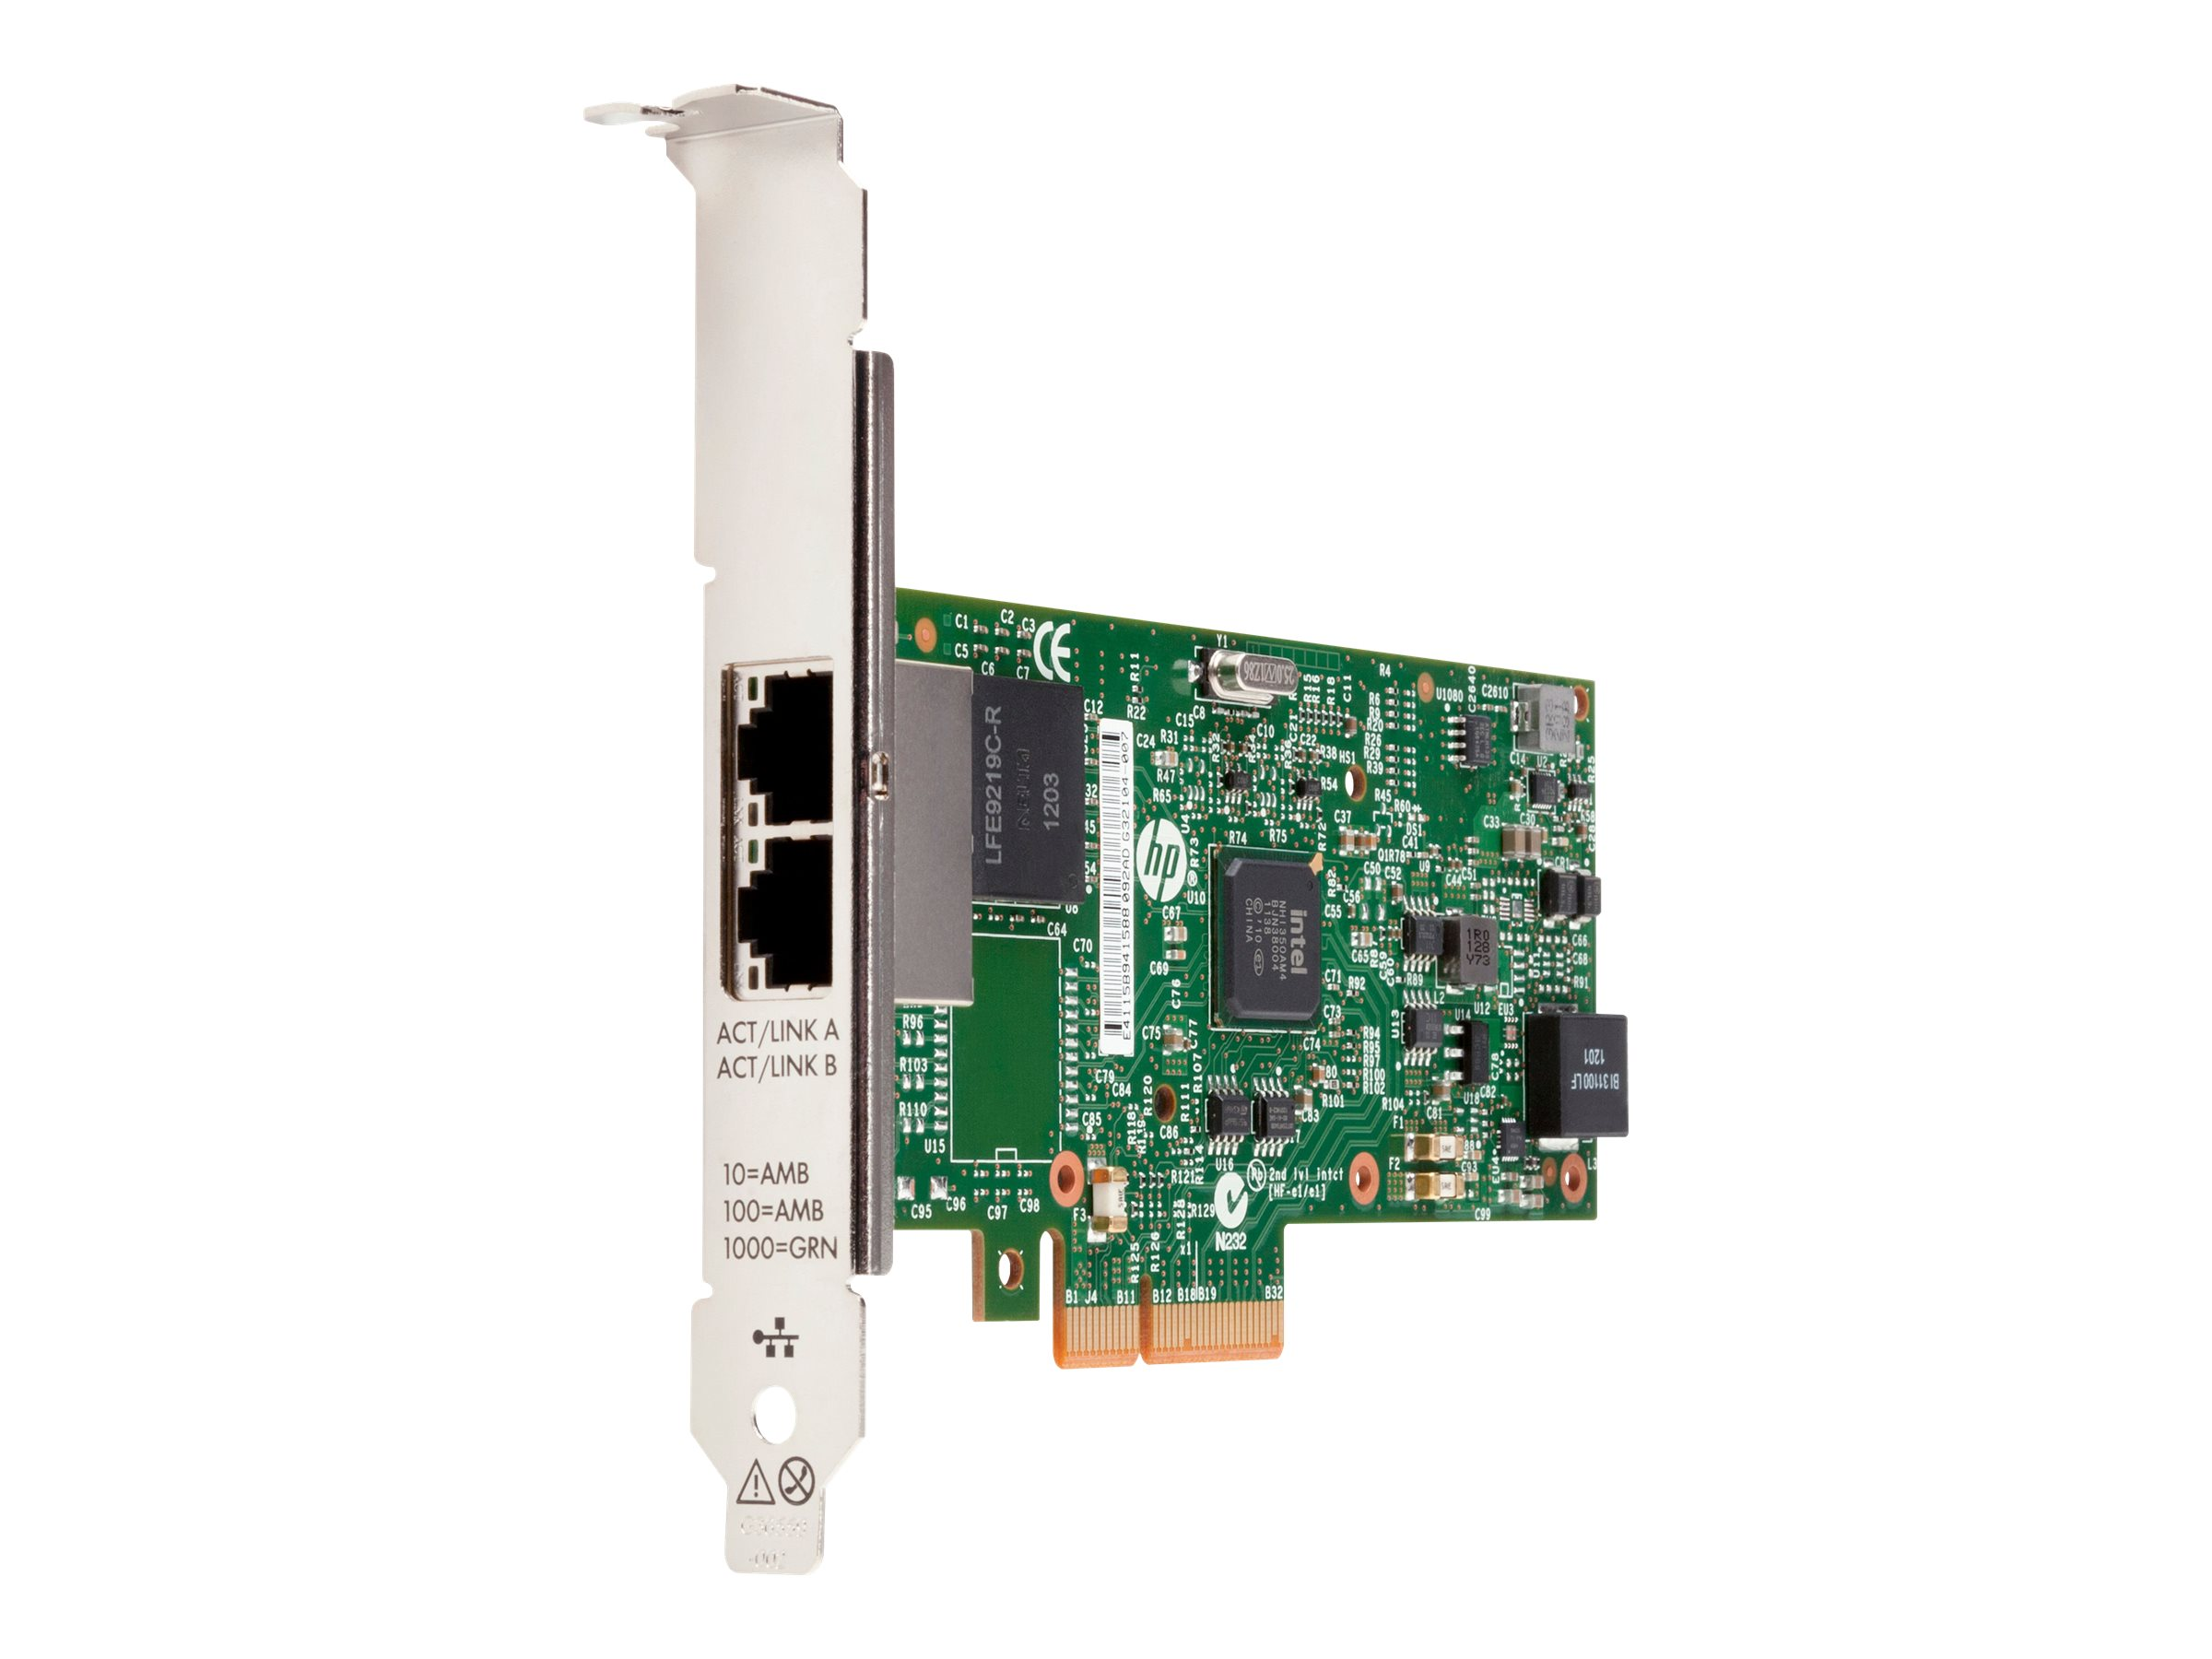 HP 361T - Netzwerkadapter - PCIe 2.1 x4 low profile - Gigabit Ethernet x 2 - für Workstation Z220, Z420, Z620, Z820